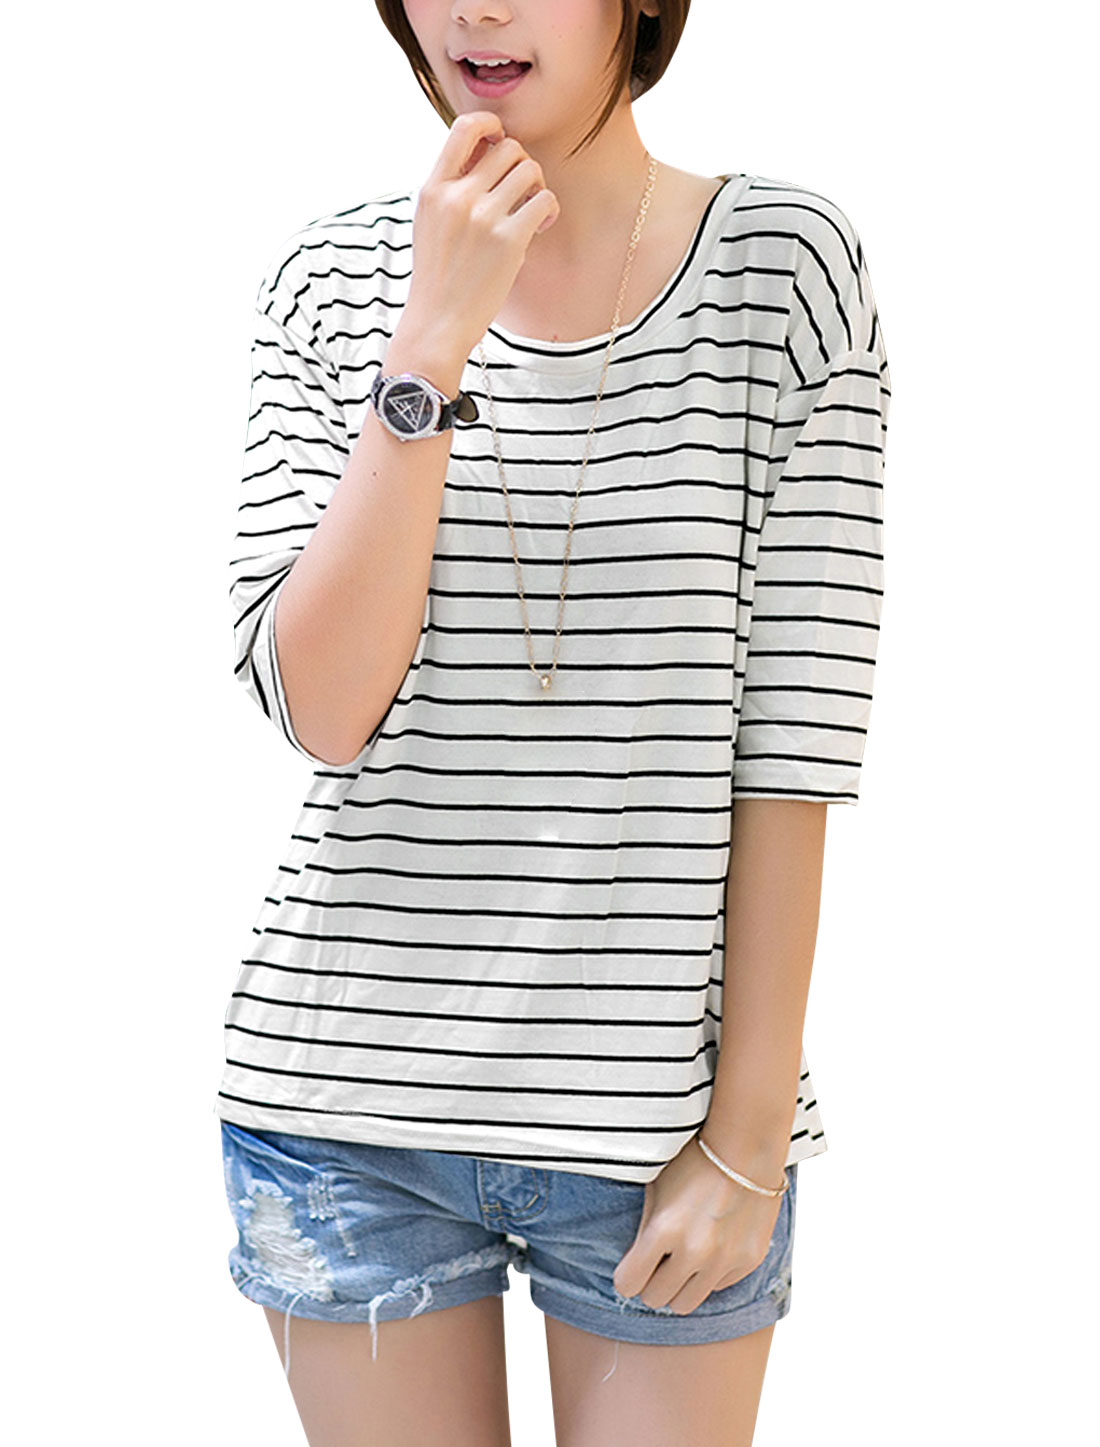 Lady Horizontal Stripes Batwing Elbow Sleeve Slipover T-Shirt White XS